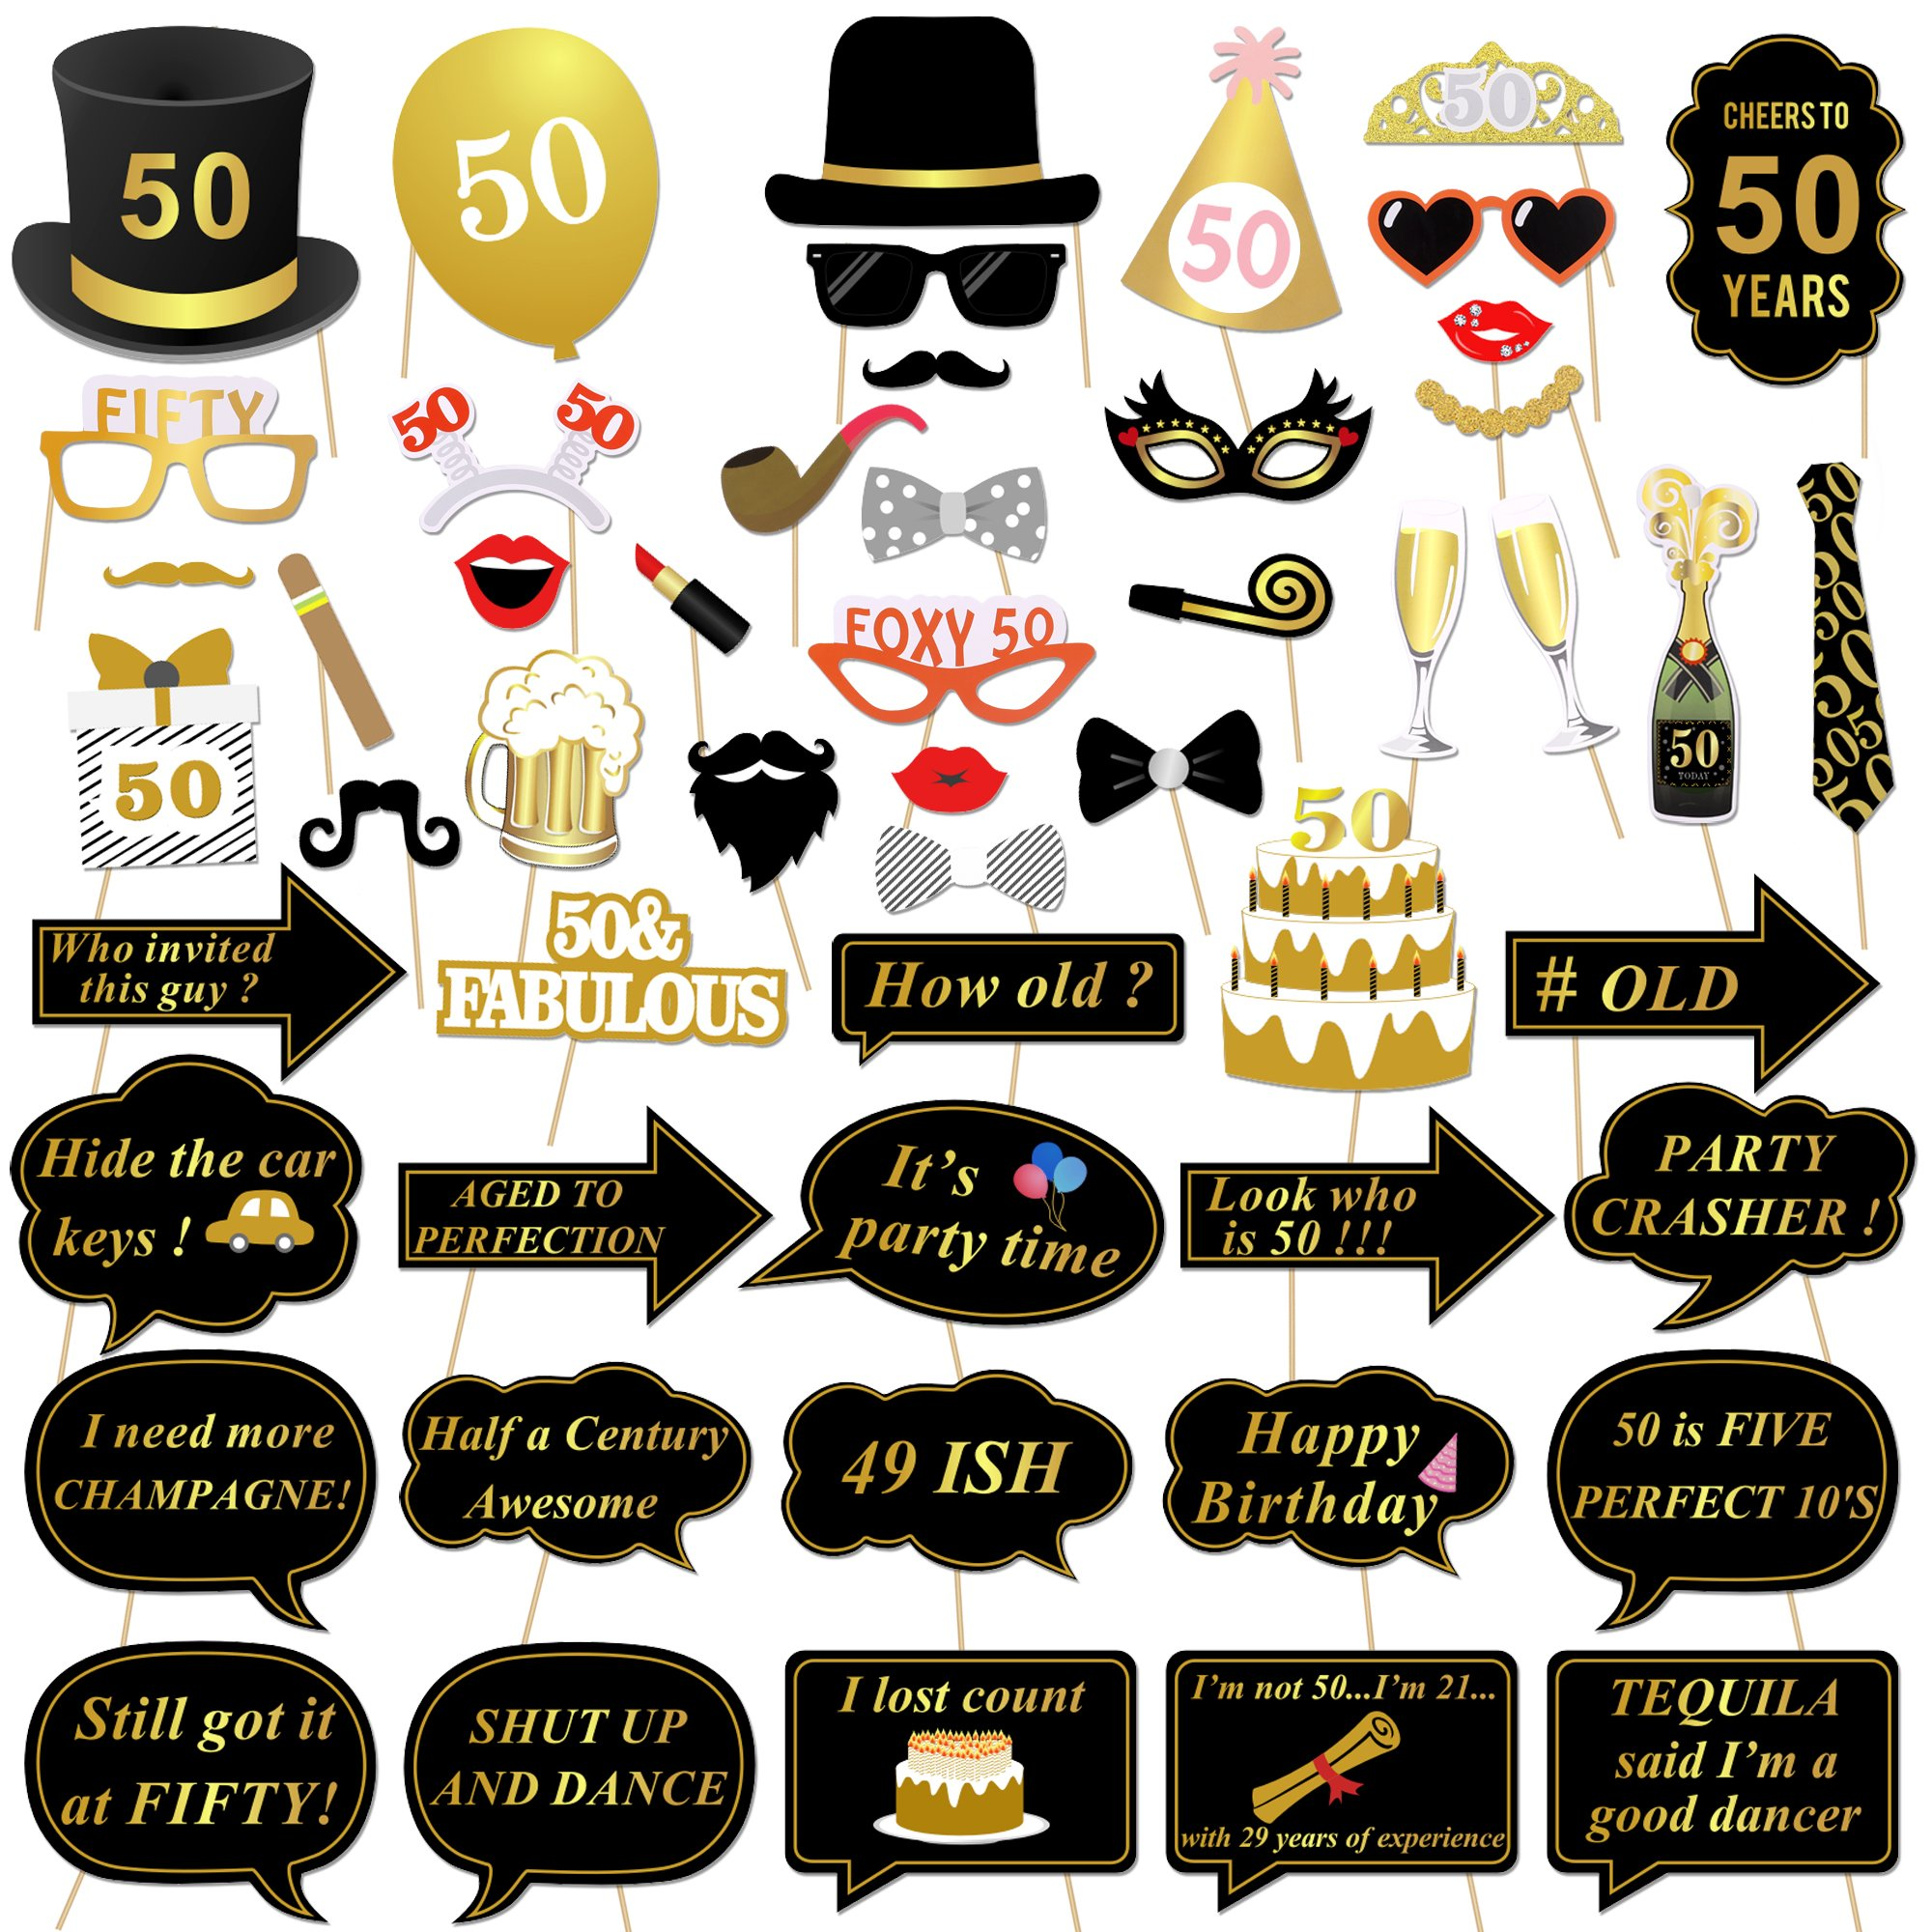 50th Birthday Photo Booth Props, Konsait 50 Black and Faux Gold Happy Birthday Decorations DIY Photo Booth Prop Kits with Stick for Birthday Party Favor Supplies (53 Counts) by Konsait